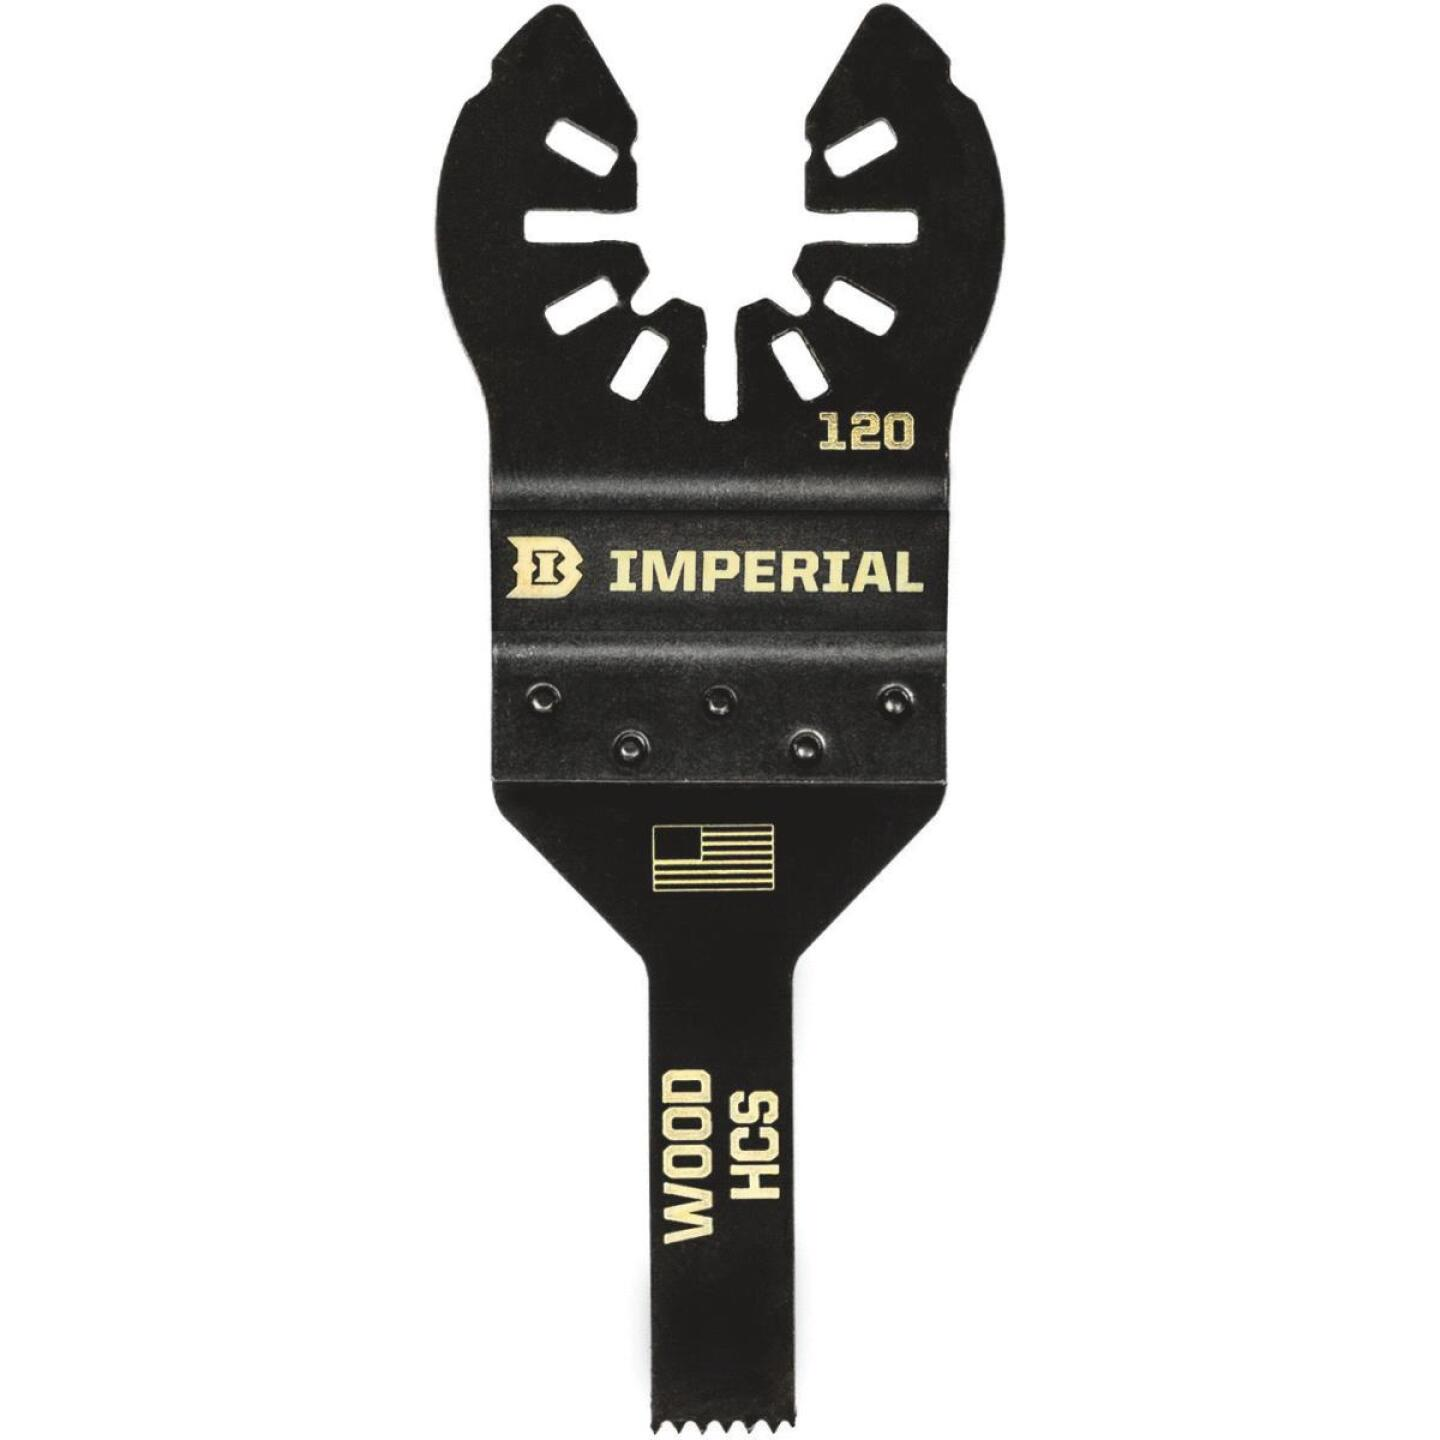 Imperial Blades One Fit 3/8 In. High Carbon Steel Detail Oscillating Blade Image 1